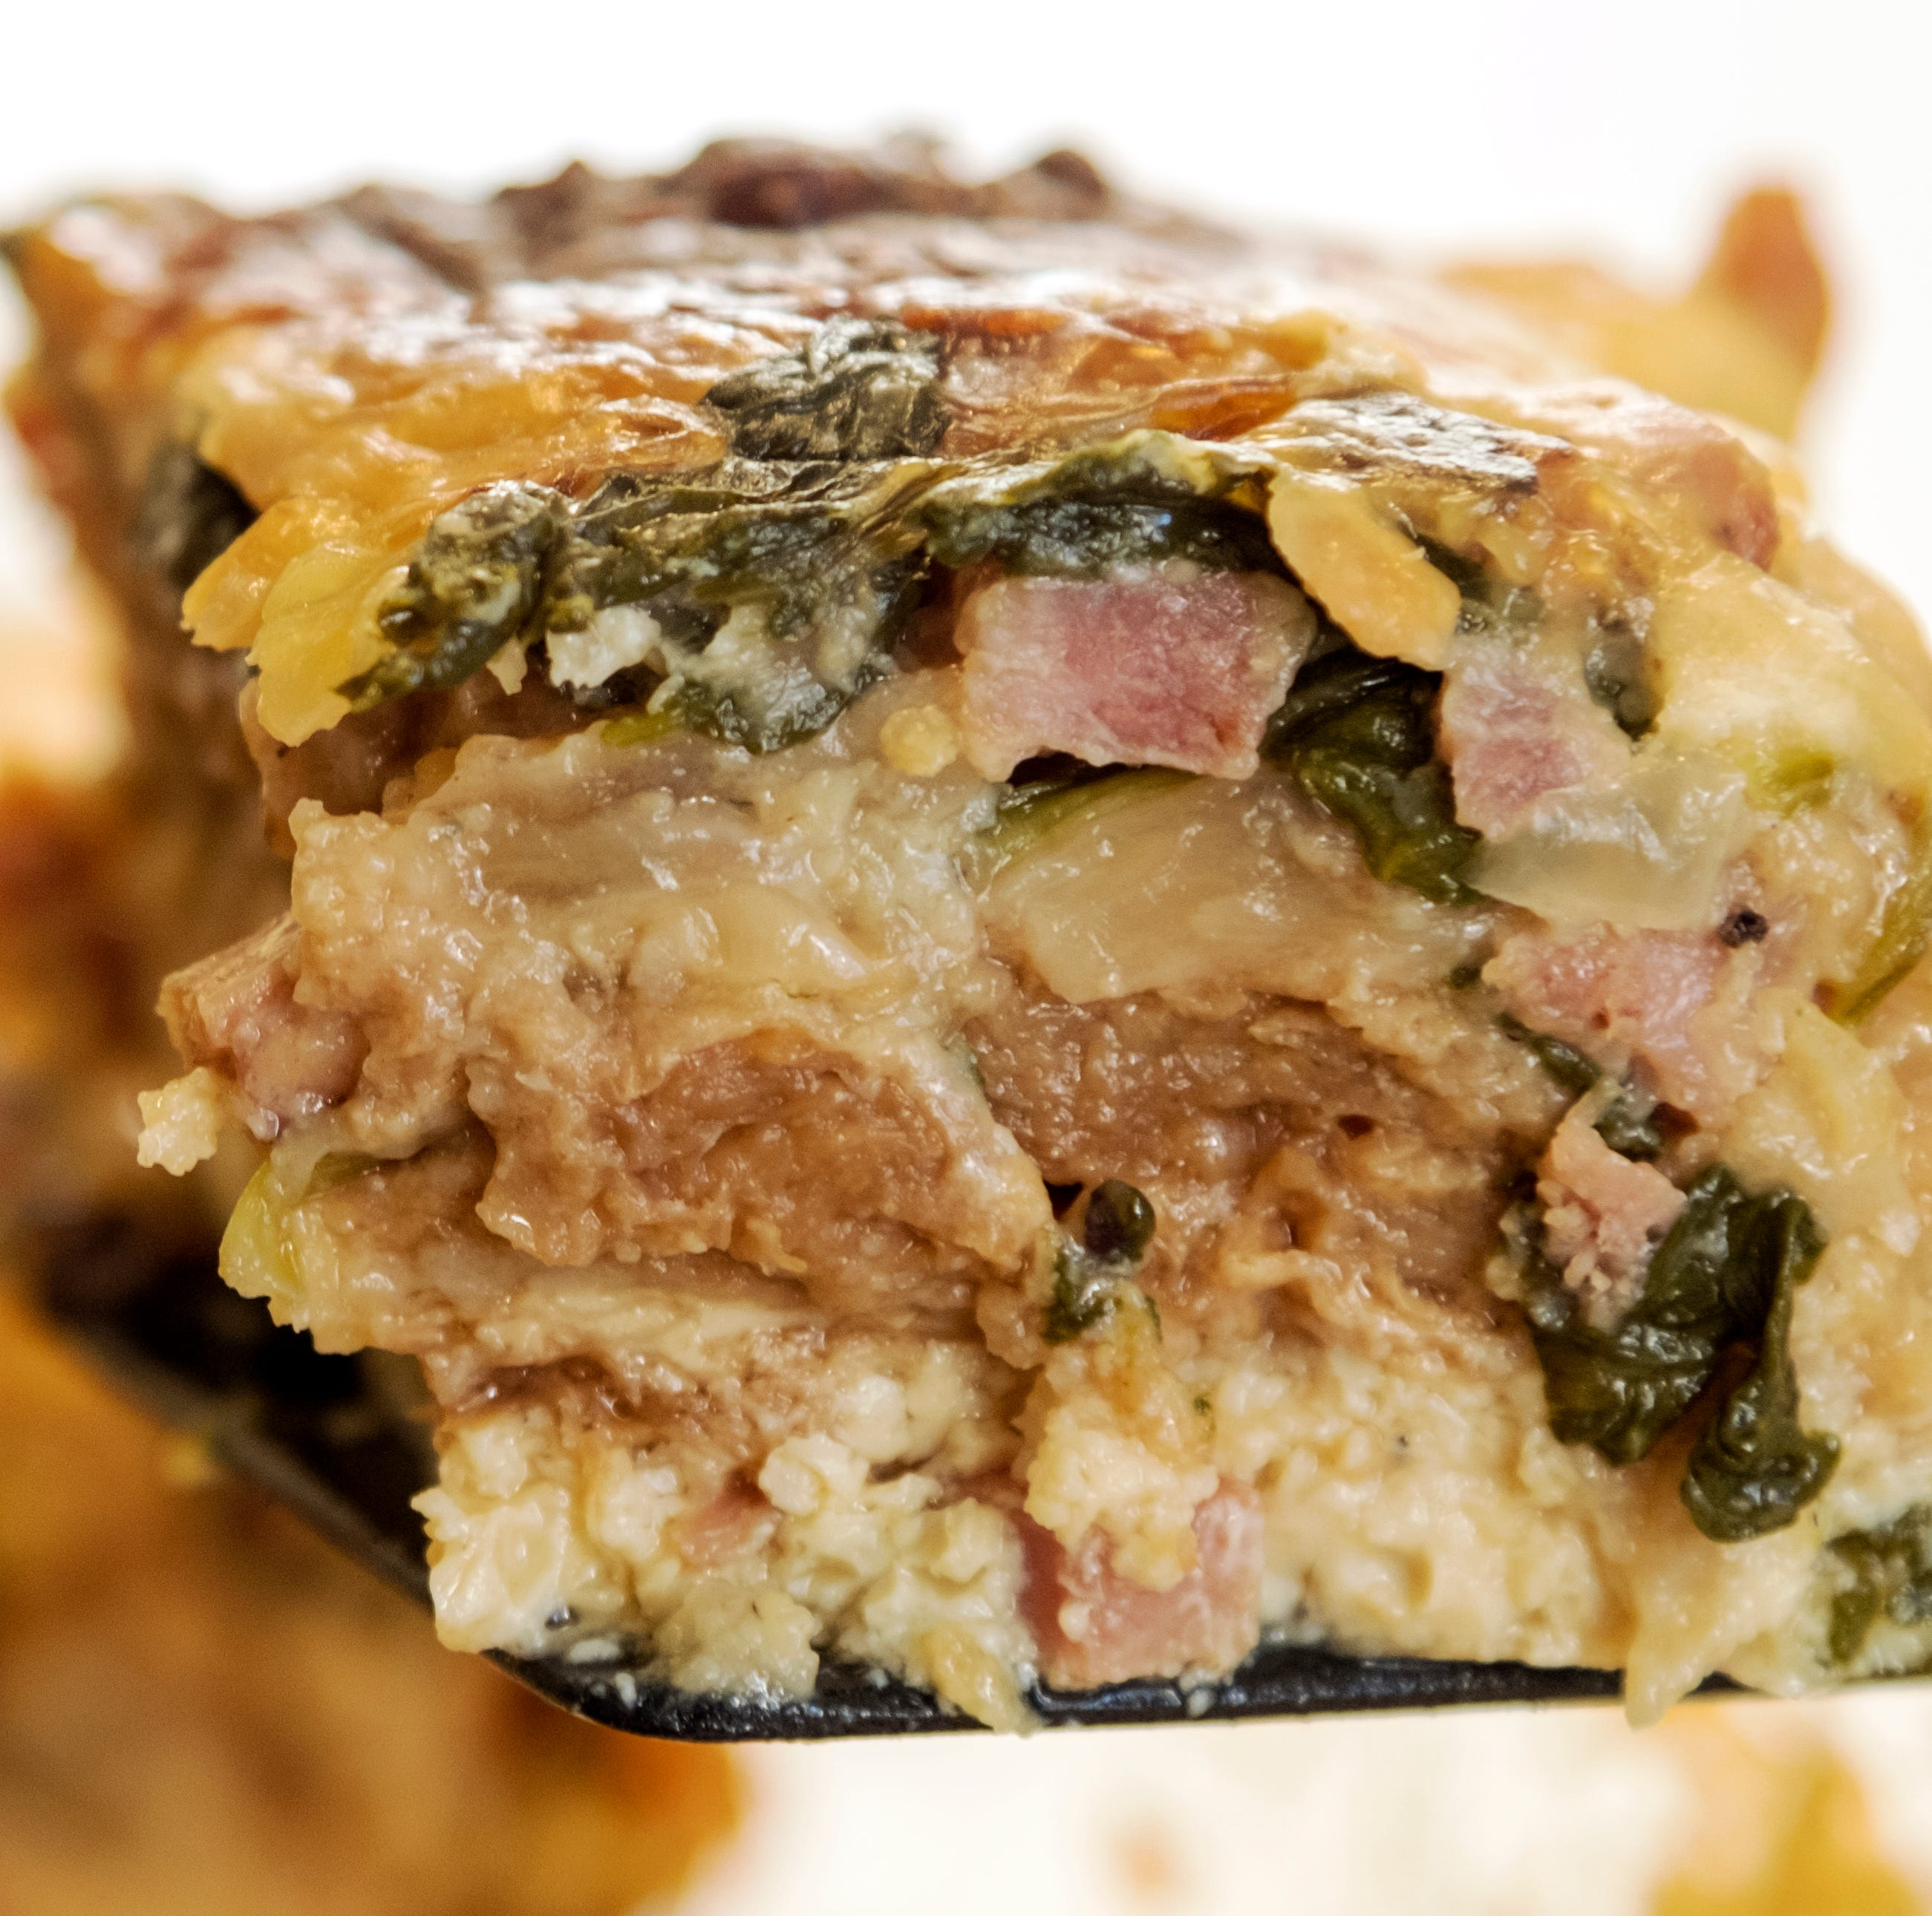 Easy breakfast casseroles are big time savers during the holidays